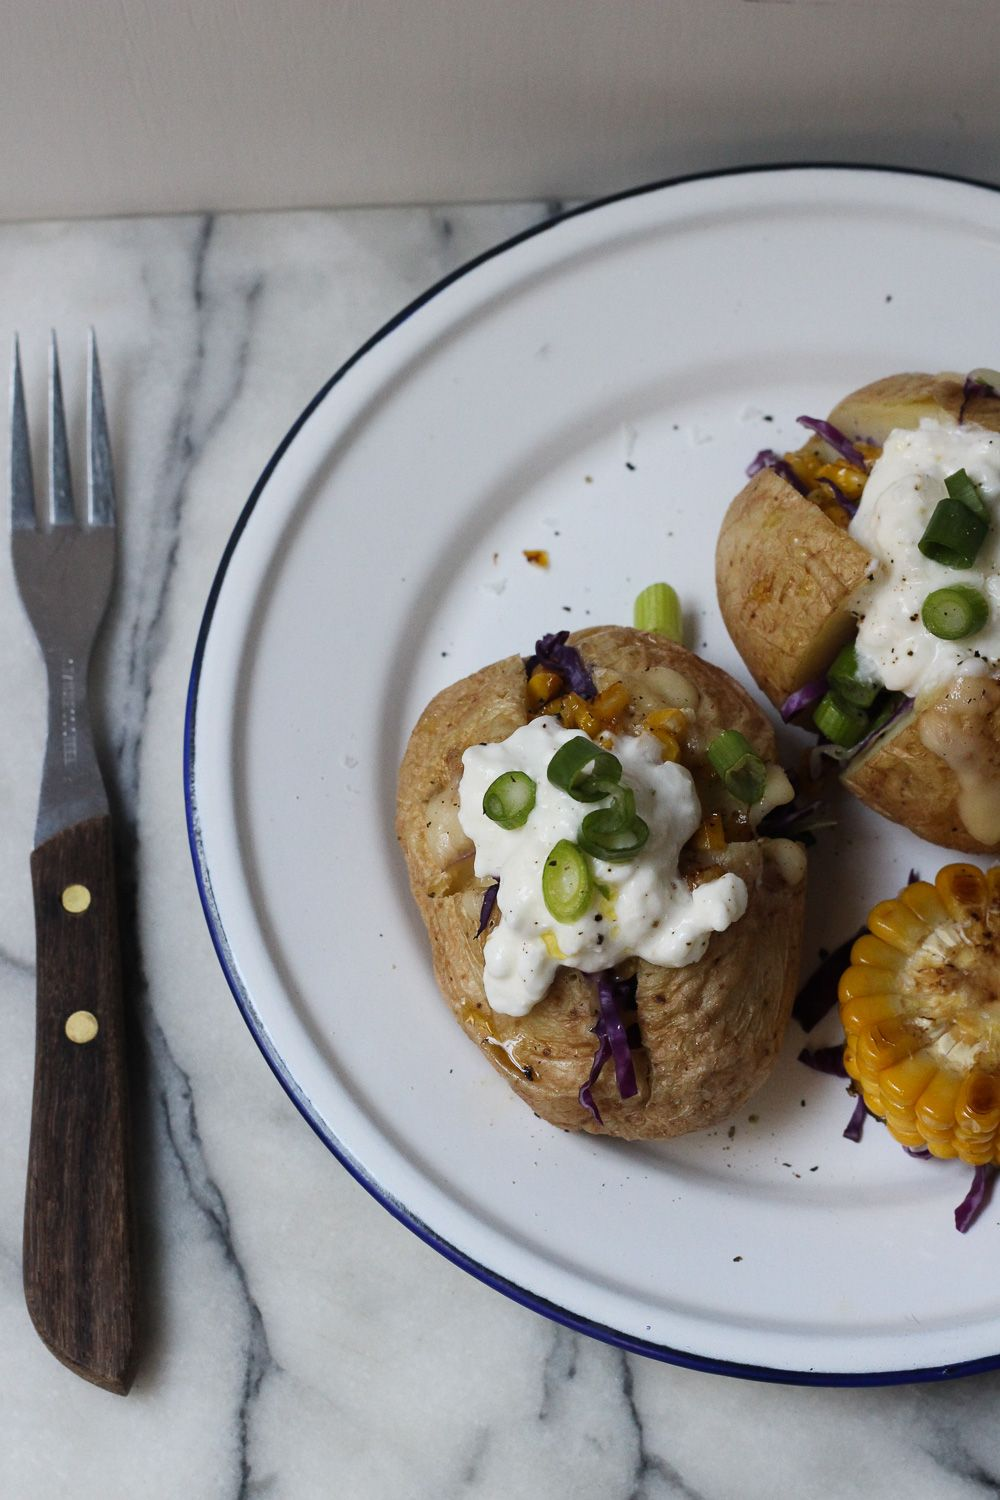 Fantastic Microwave Baked Potato With Corn Cabbage And Cottage Cheese Interior Design Ideas Gentotryabchikinfo